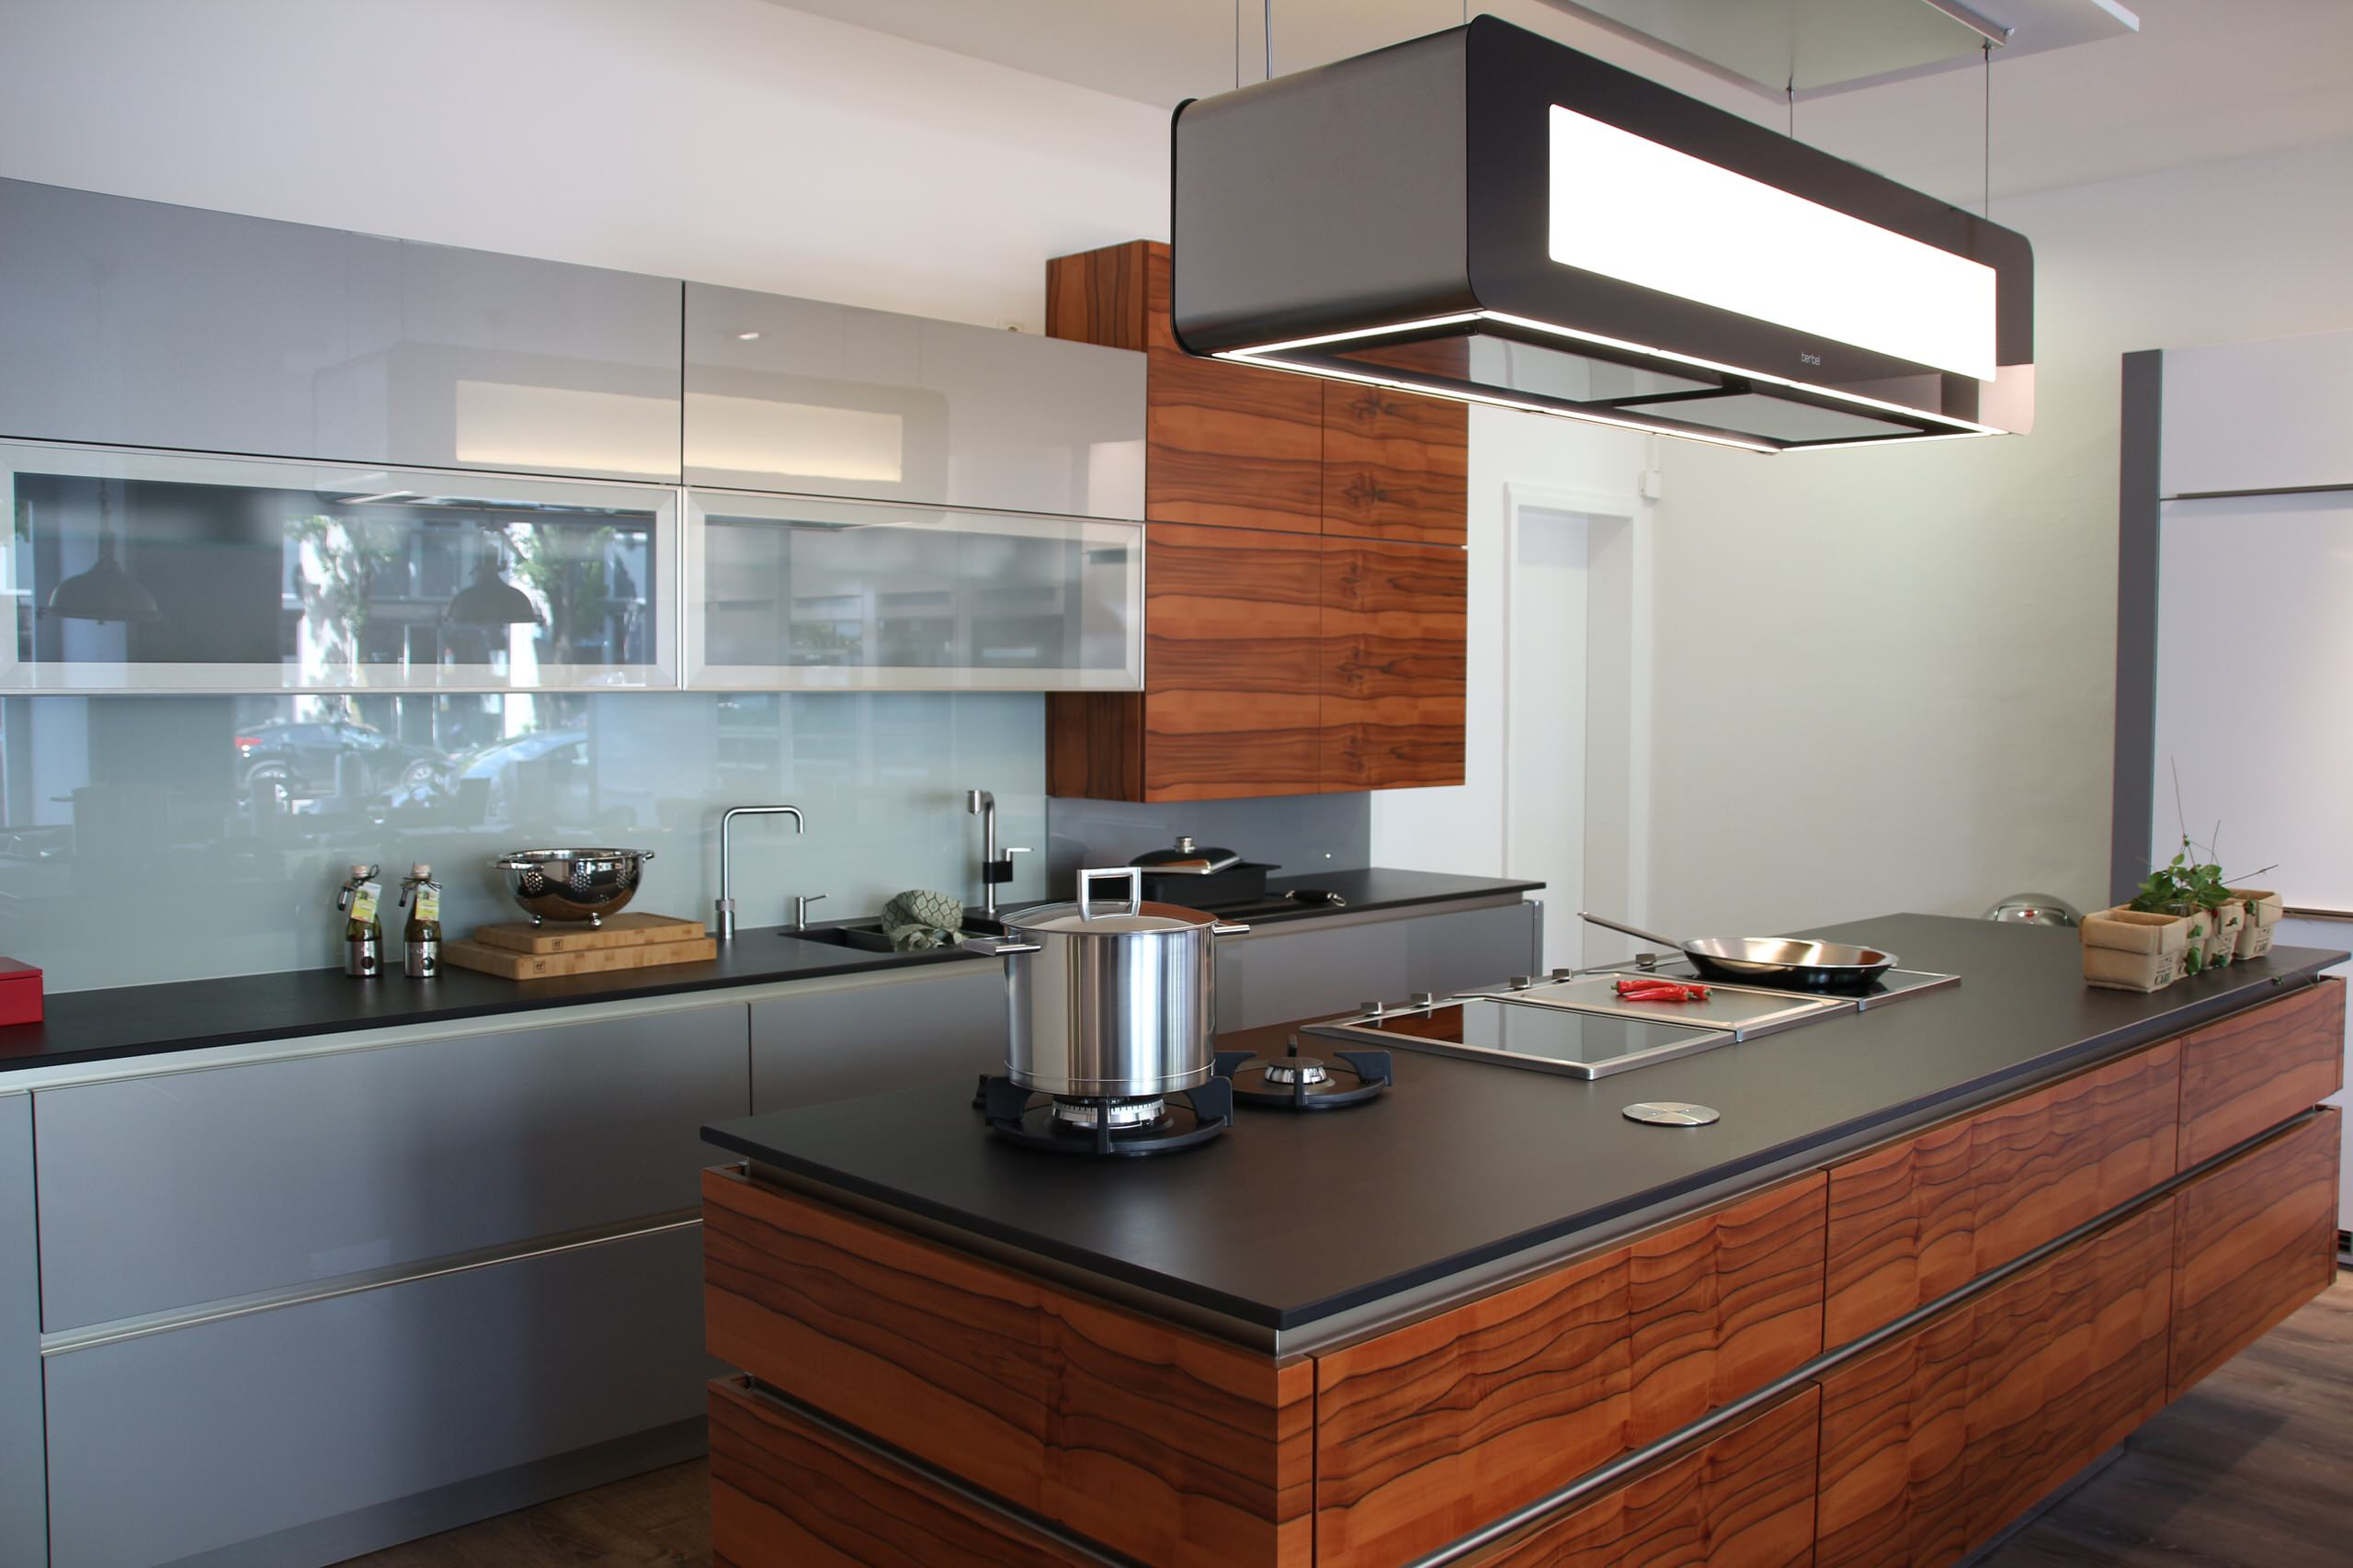 18 Hot Kitchen Renovation Tips & Designs That Will ... on Kitchen Model Ideas  id=60901